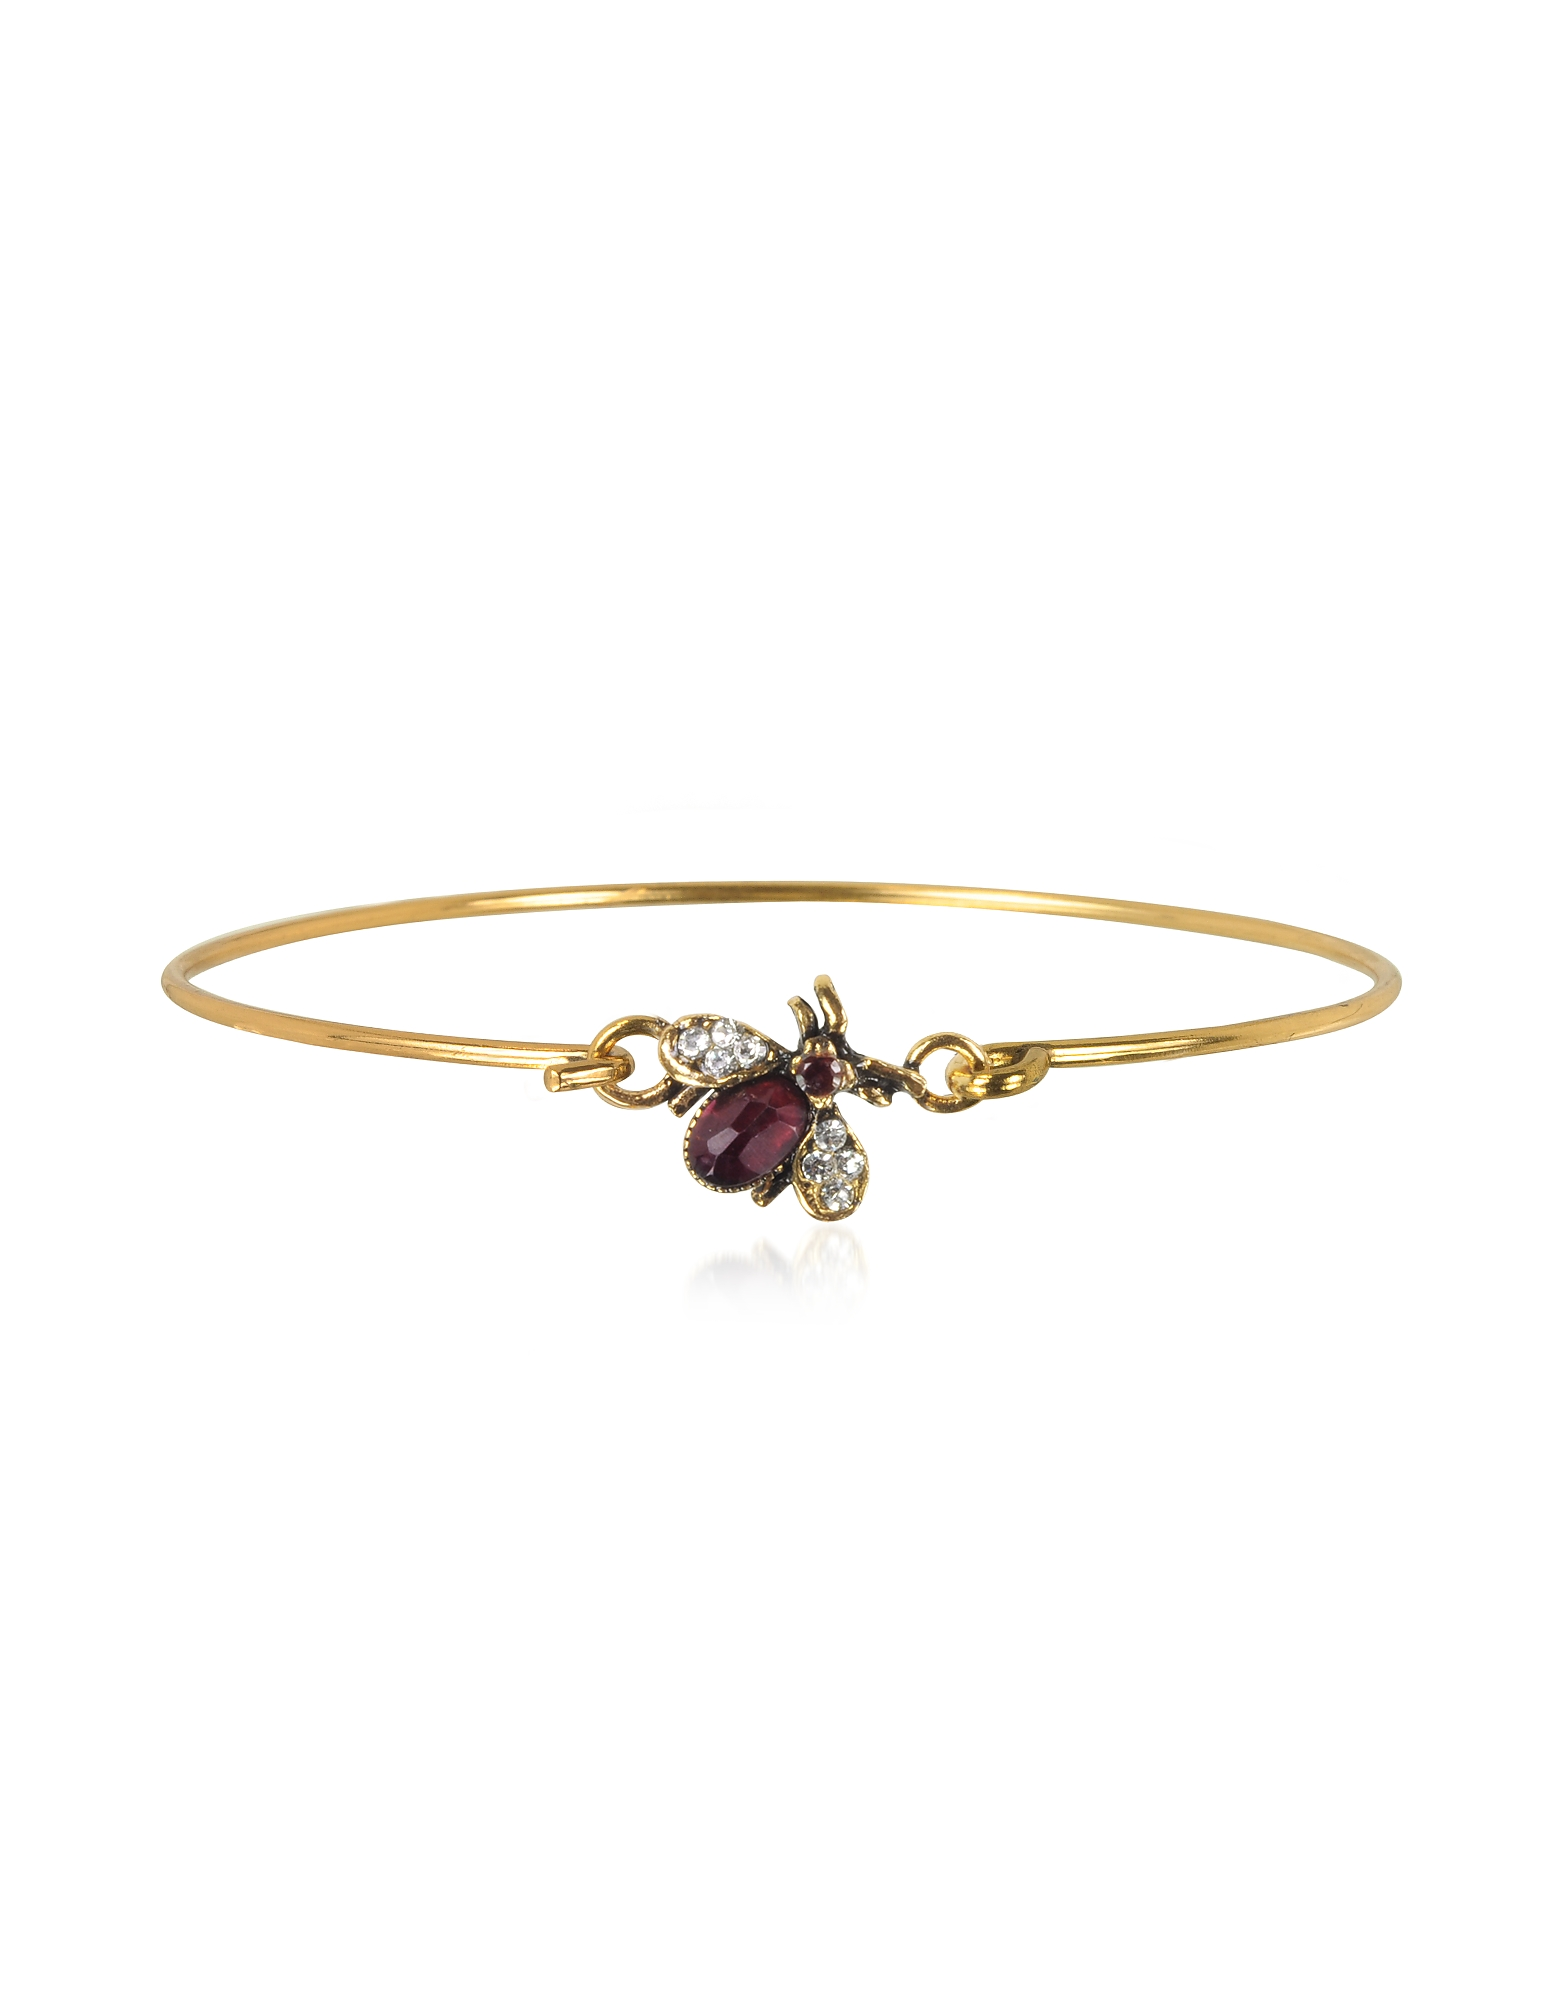 Brass and Crystals Moschina Bangle